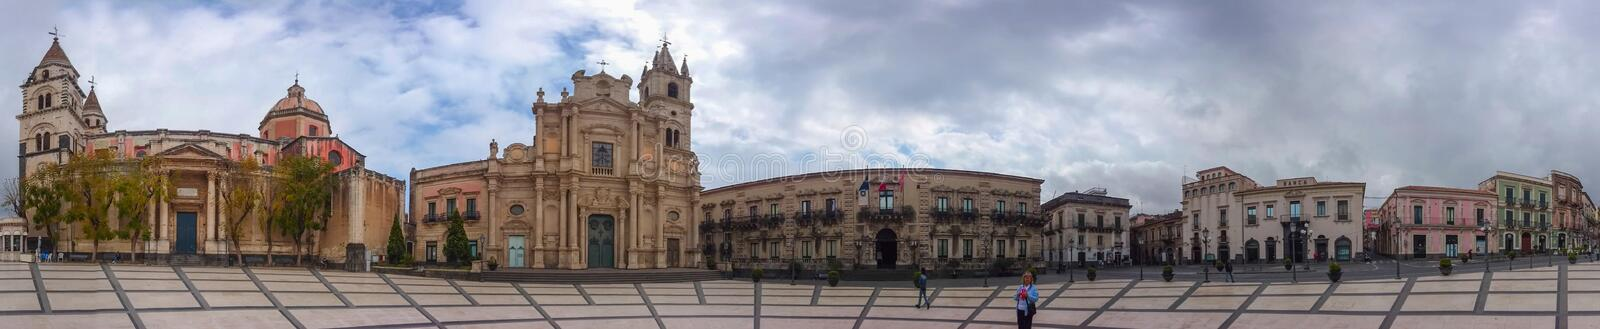 Panoramic view of Piazza del Duomo in Acireale, Sicily, Italy royalty free stock images